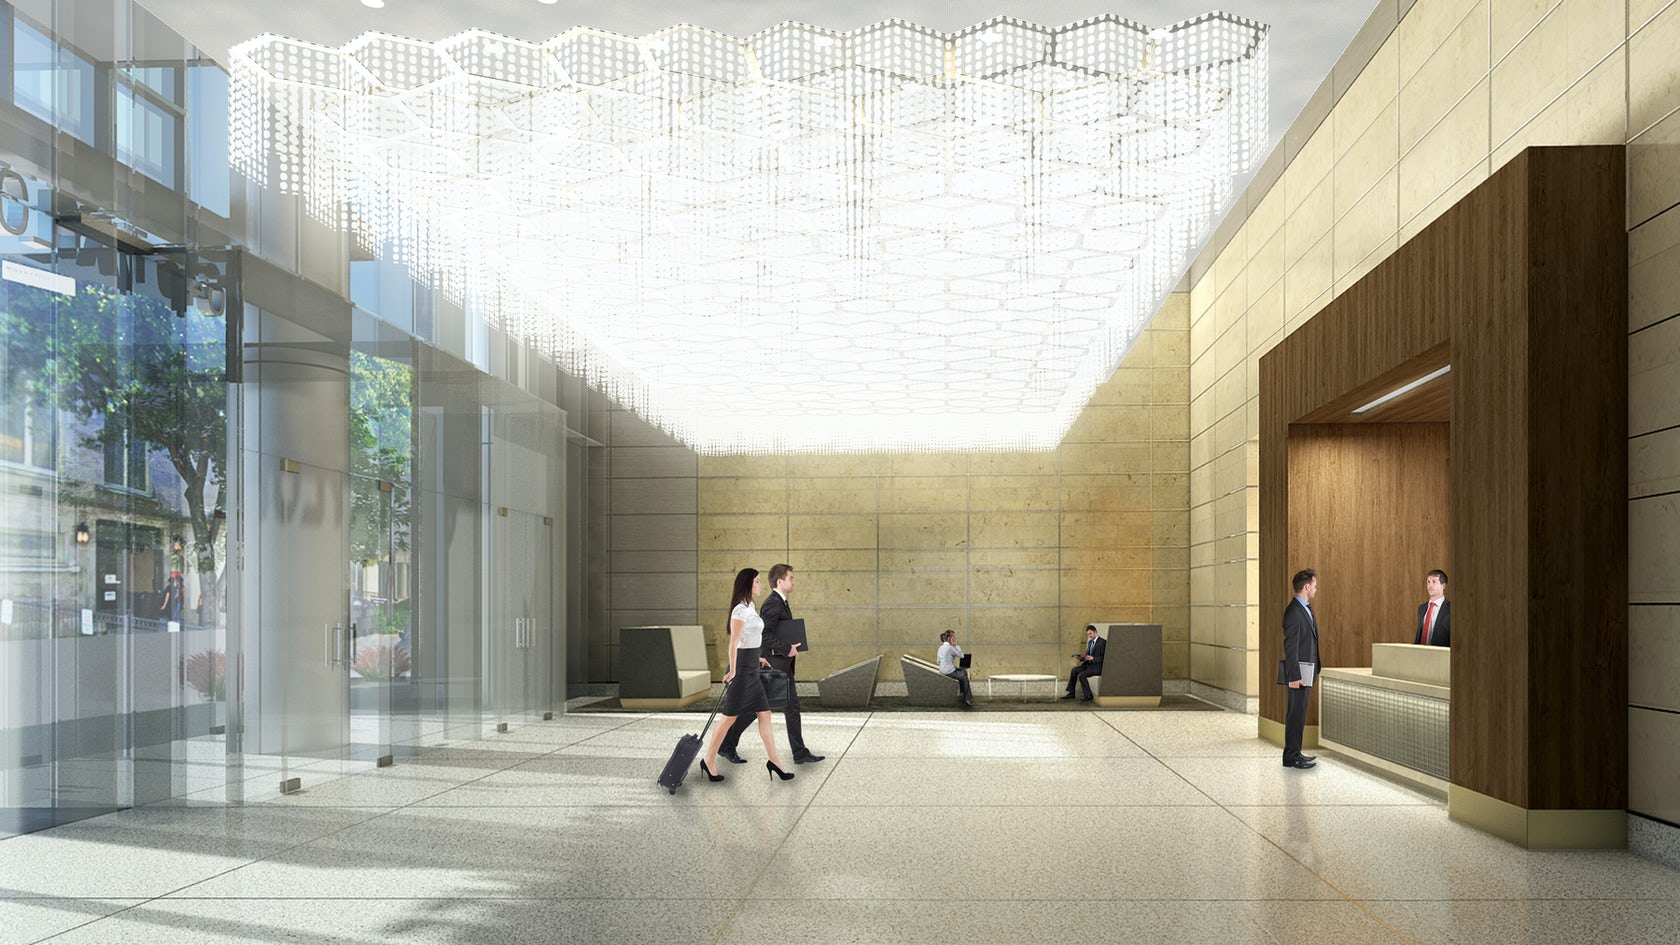 Frost tower fort worth architizer for Interior design firms fort worth tx